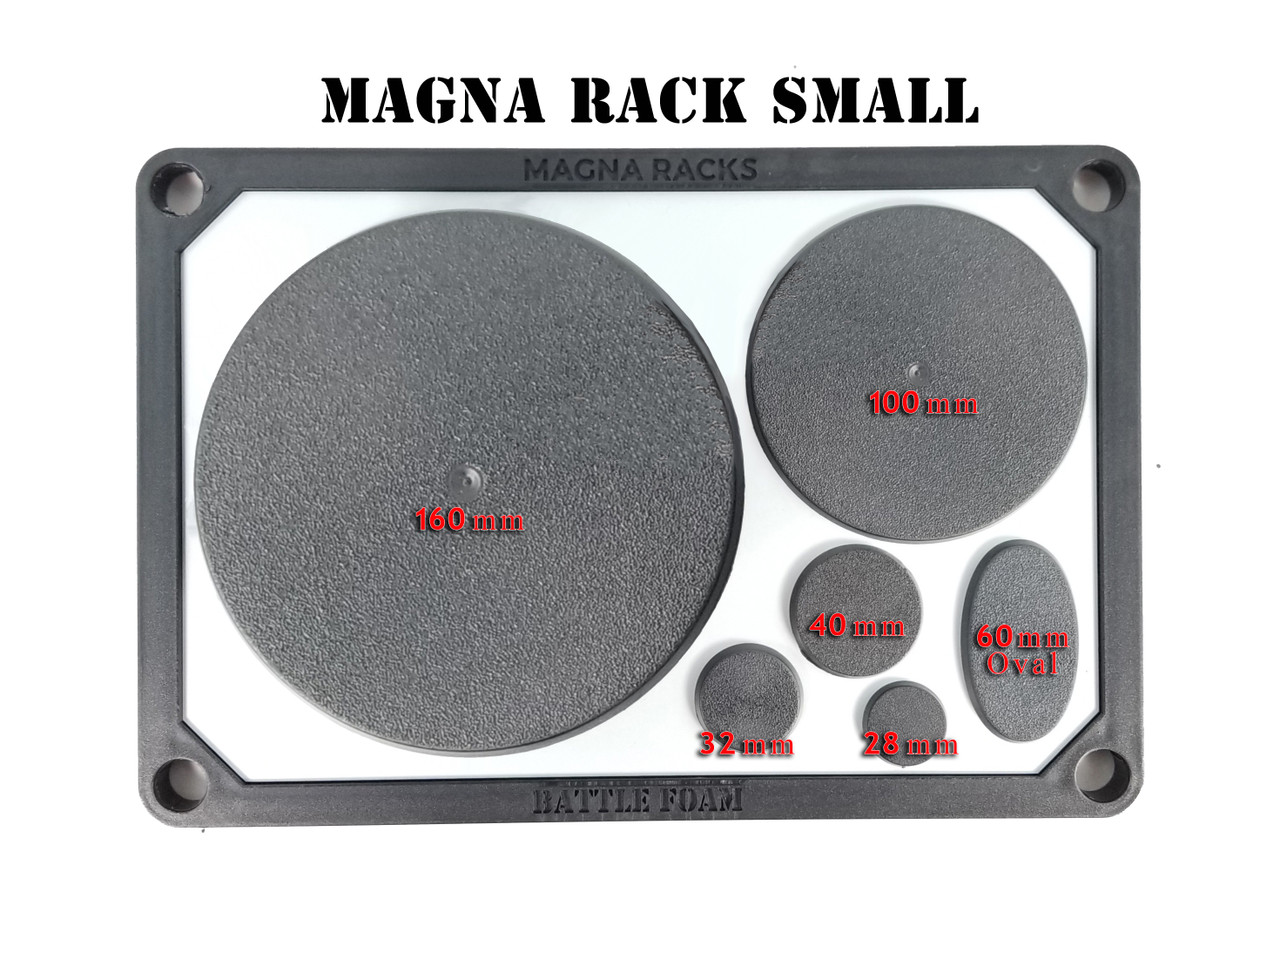 Go P A C K Go 2 0 With Magna Rack Original Load Out Black Battle Foam …so why am i not a fan of a battlefoam exclusive mini? go p a c k go 2 0 with magna rack original load out black